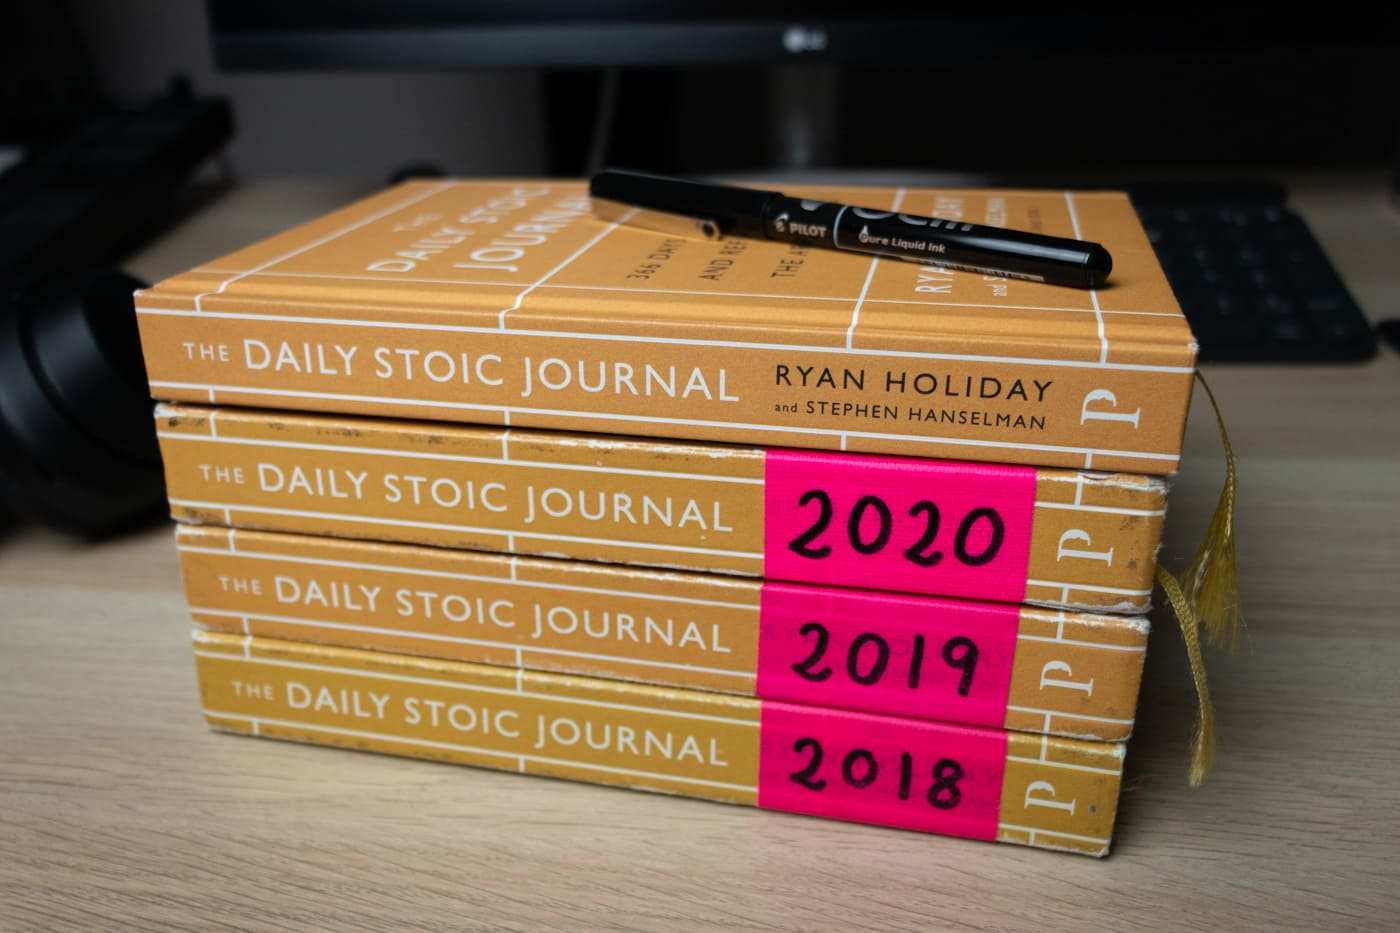 Daily Stoic Journal stack from 2018 to 2021